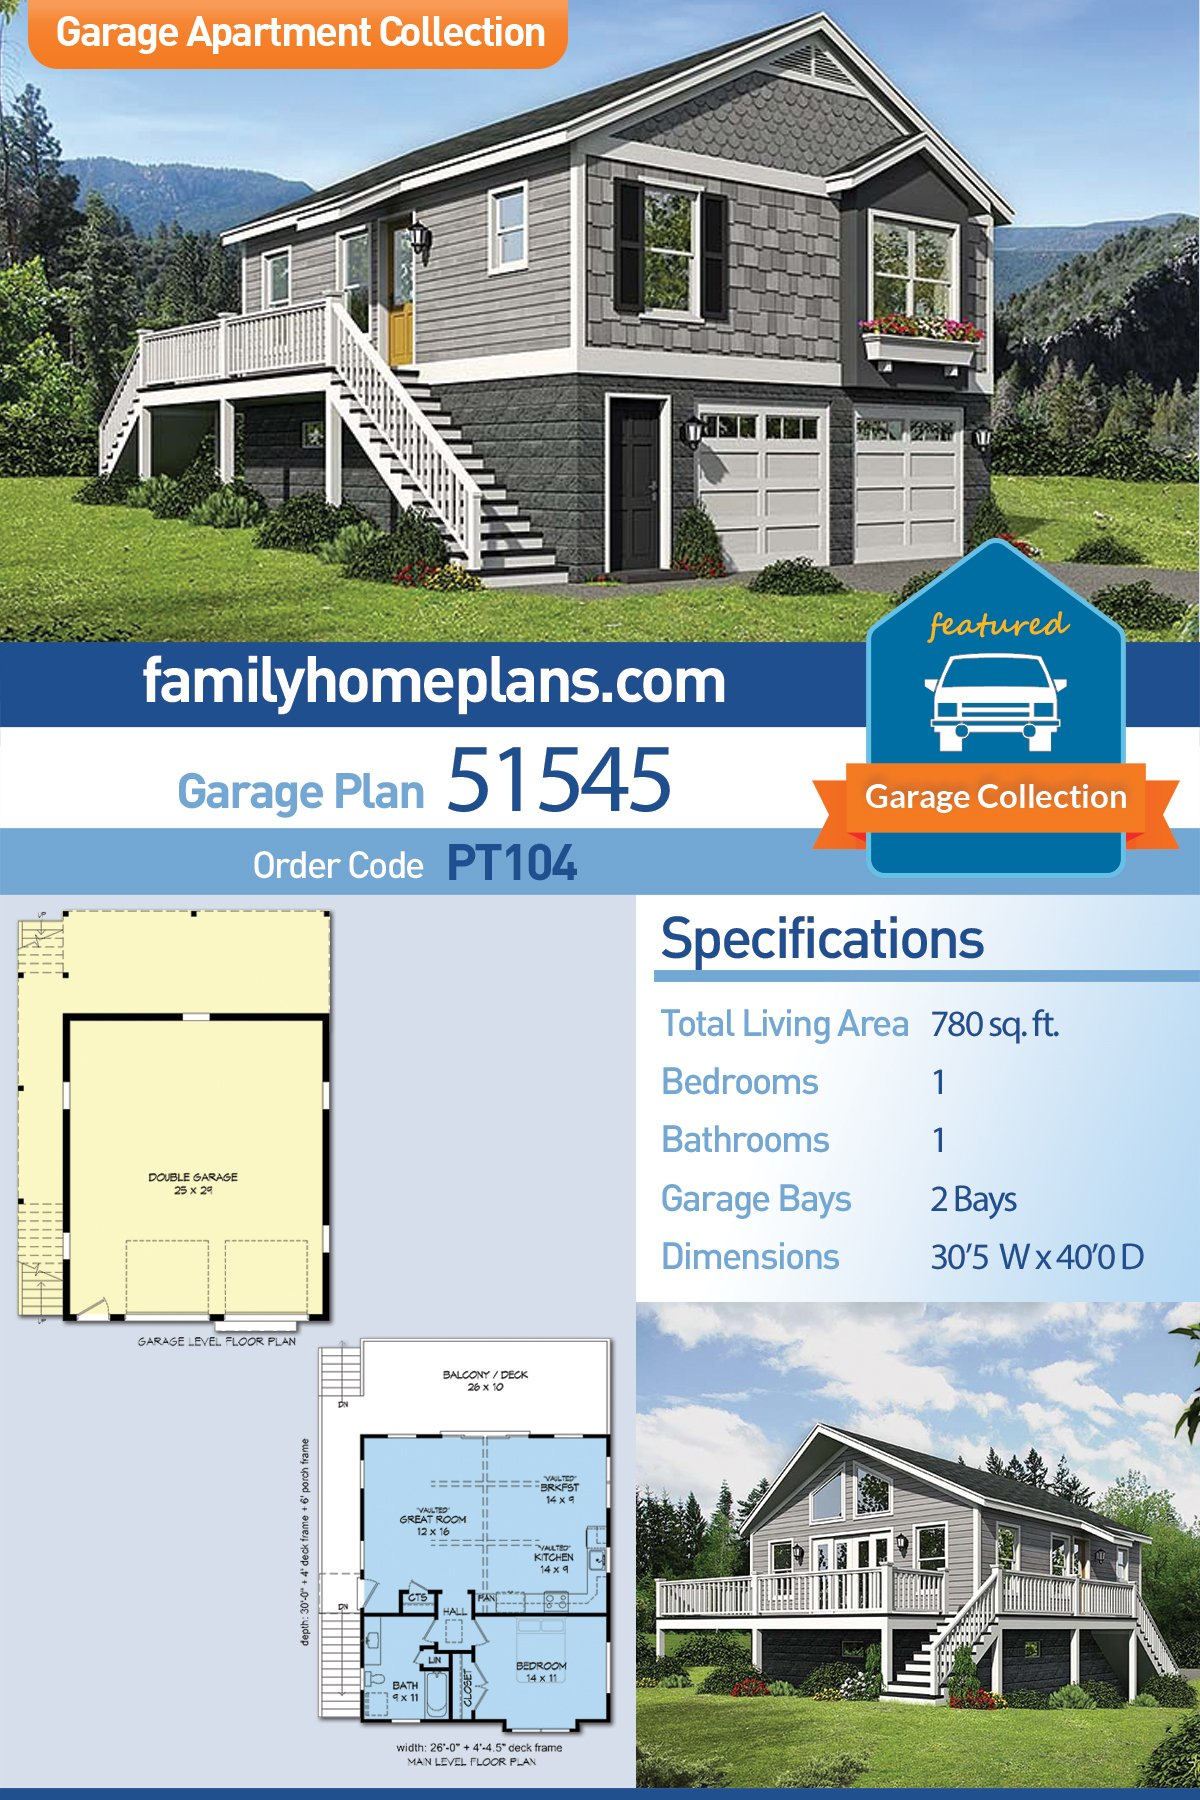 2 Car Garage Apartment Plan 51545 with 1 Beds, 1 Baths